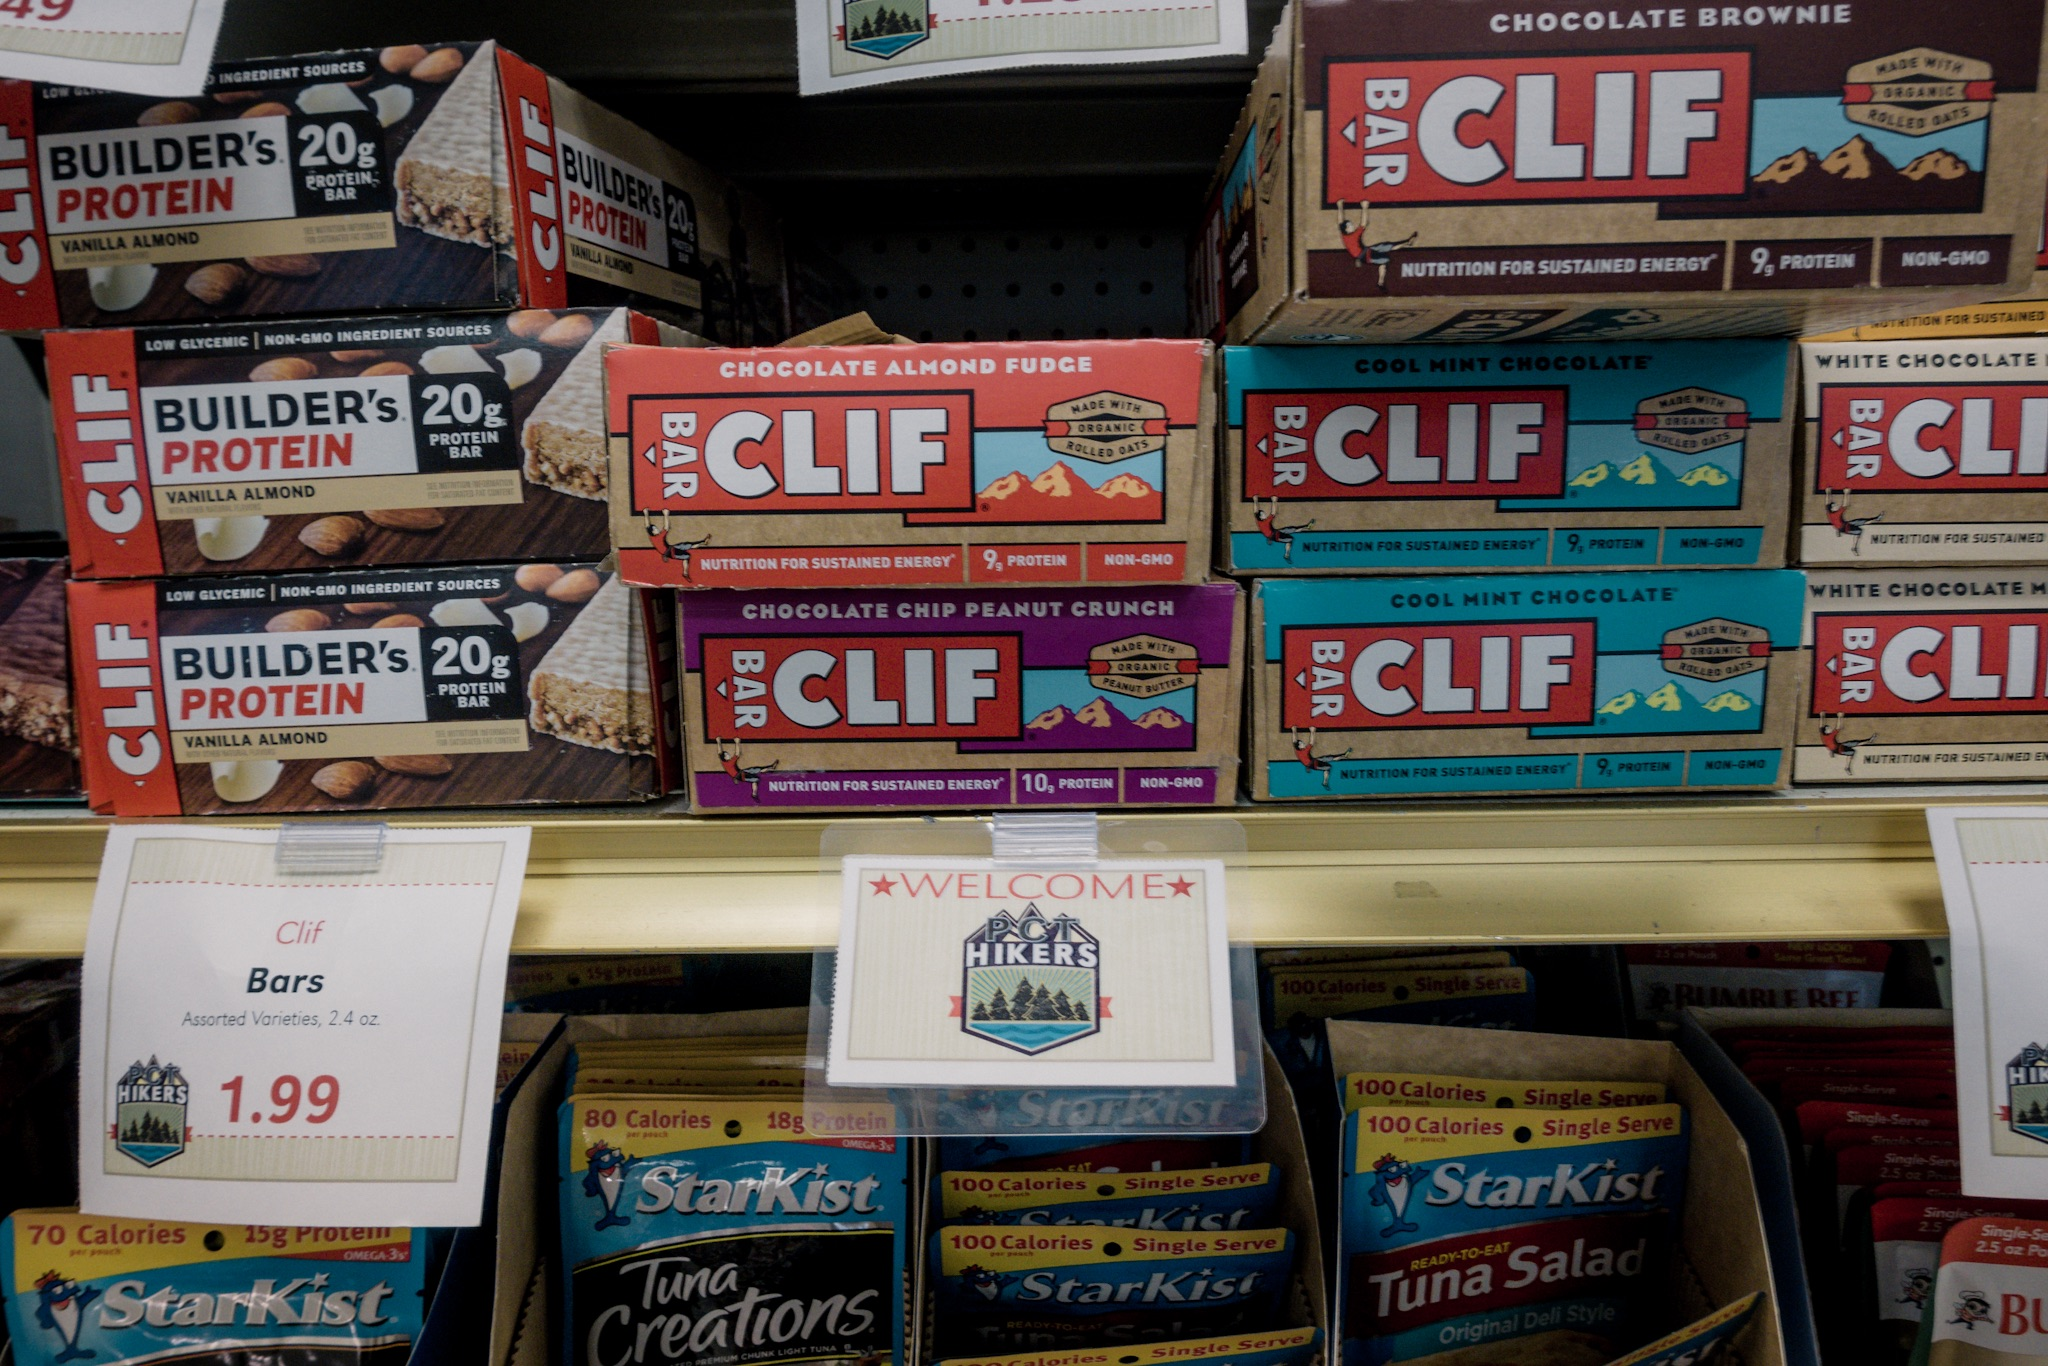 Clif bars for PCT hikers.